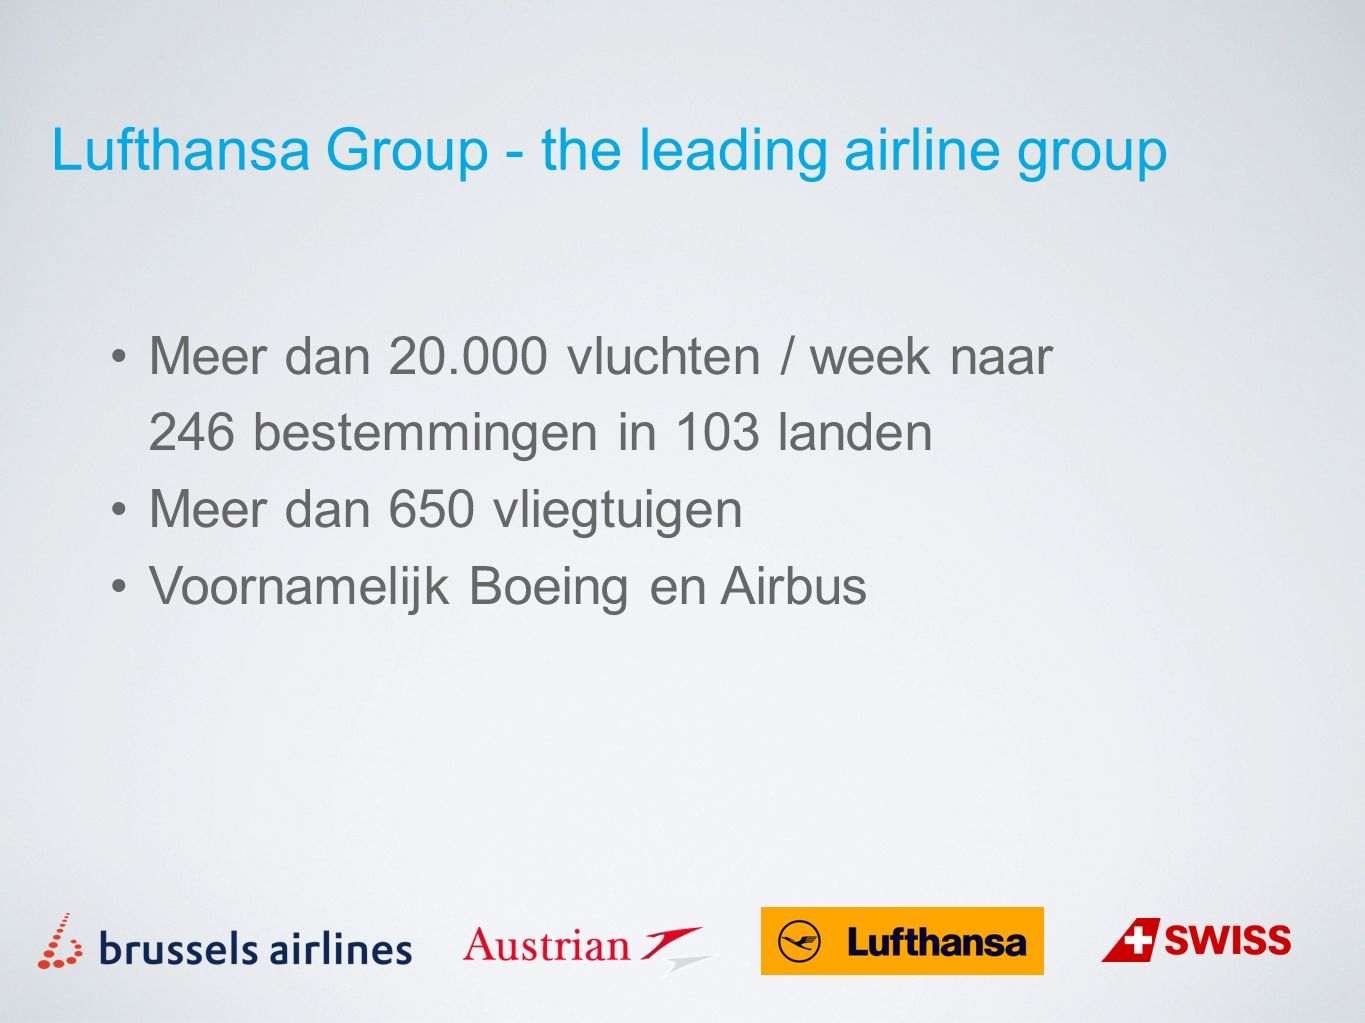 Meer dan 20.000 vluchten / week naar 246 bestemmingen in 103 landen Meer dan 650 vliegtuigen Voornamelijk Boeing en Airbus Lufthansa Group - the leading airline group